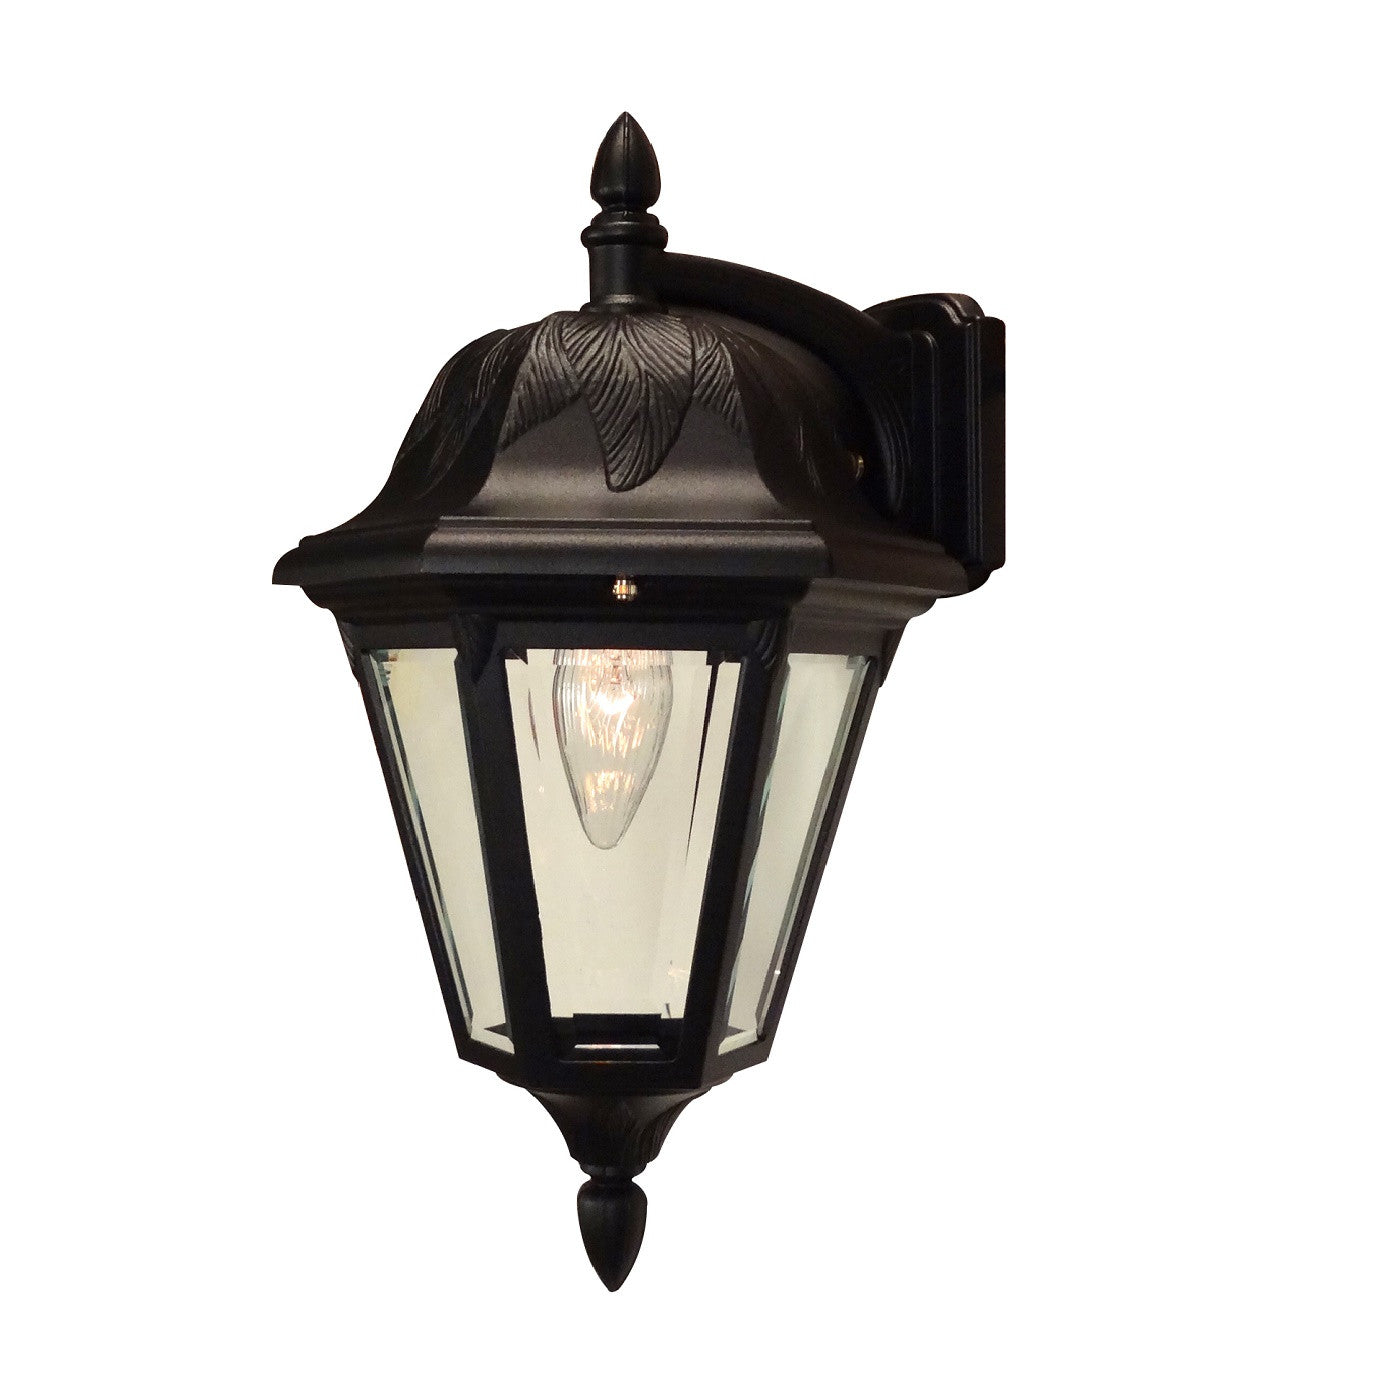 Special lite products floral small top mount light fixture for Best light fixture brands